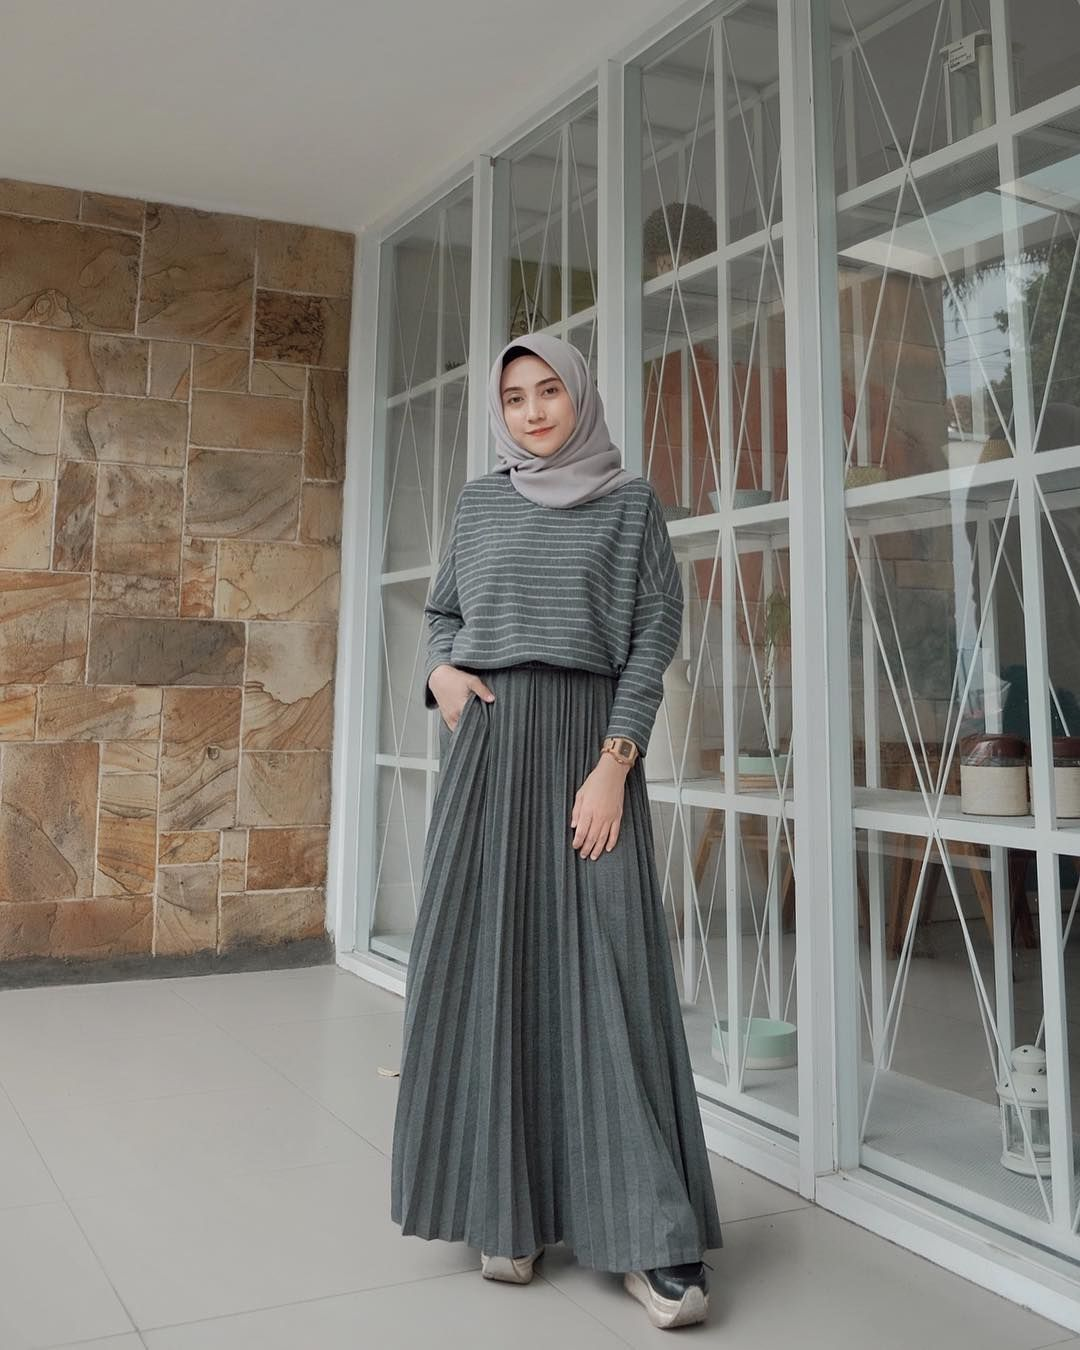 9+ Best hijab skirt outfit images in 9  hijab fashion